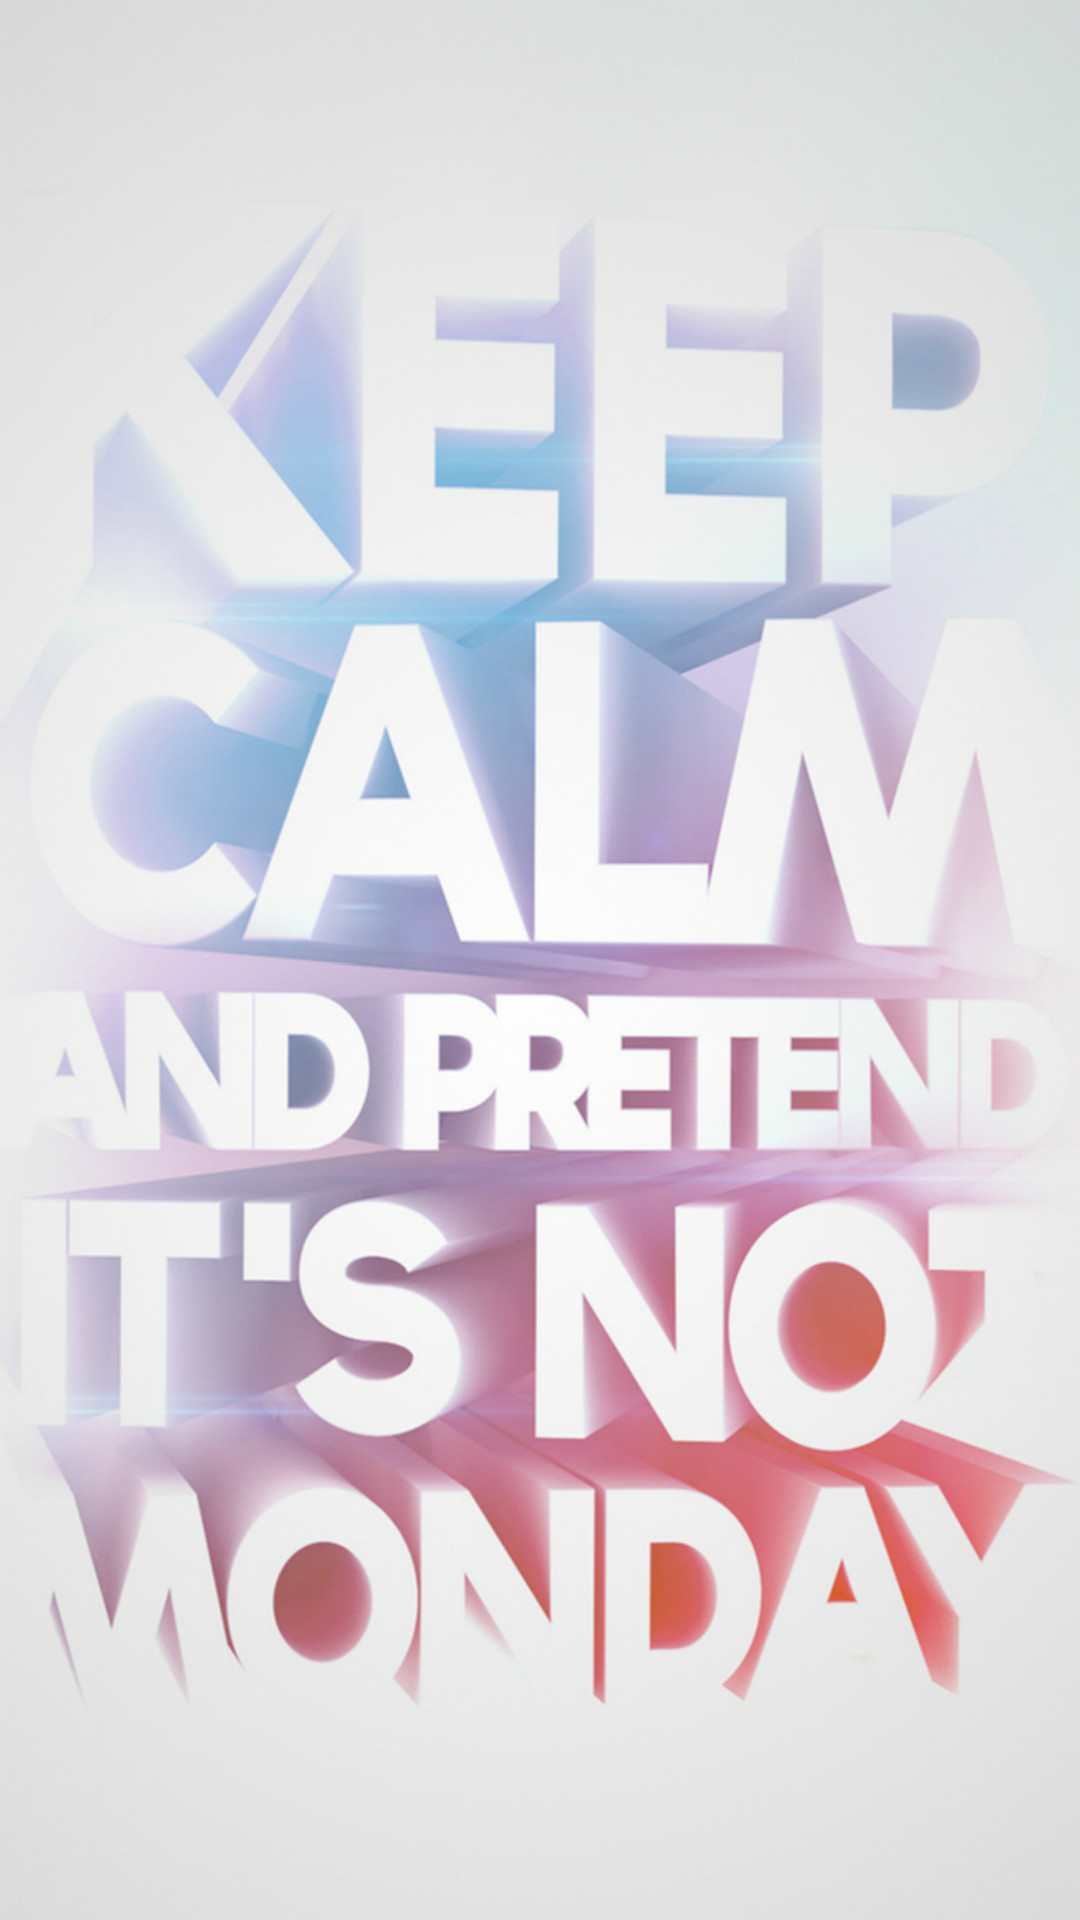 1080x1920 Fun Text Keep Calm And Pretend It's Not Monday iPhone 6 wallpaper. Wallpaper  QuotesIphone 6 WallpaperPhone ...